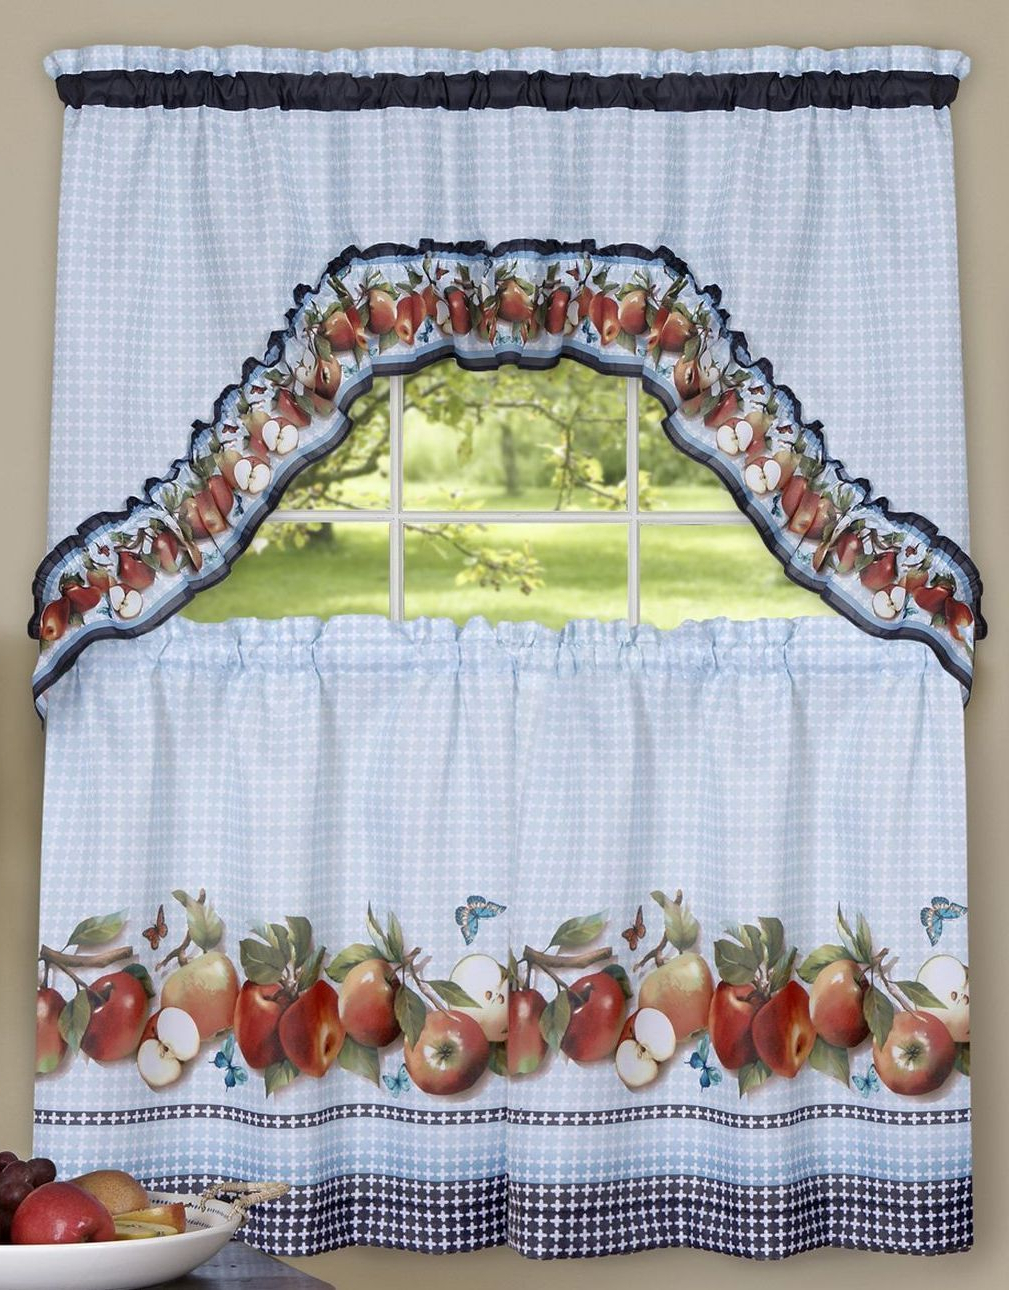 """Delicious Apples Kitchen Curtain Tier And Valance Sets Pertaining To Fashionable 3 Pc Curtains Set: 2 Tiers & Swag (57""""x30"""") And 18 Similar Items (View 6 of 20)"""